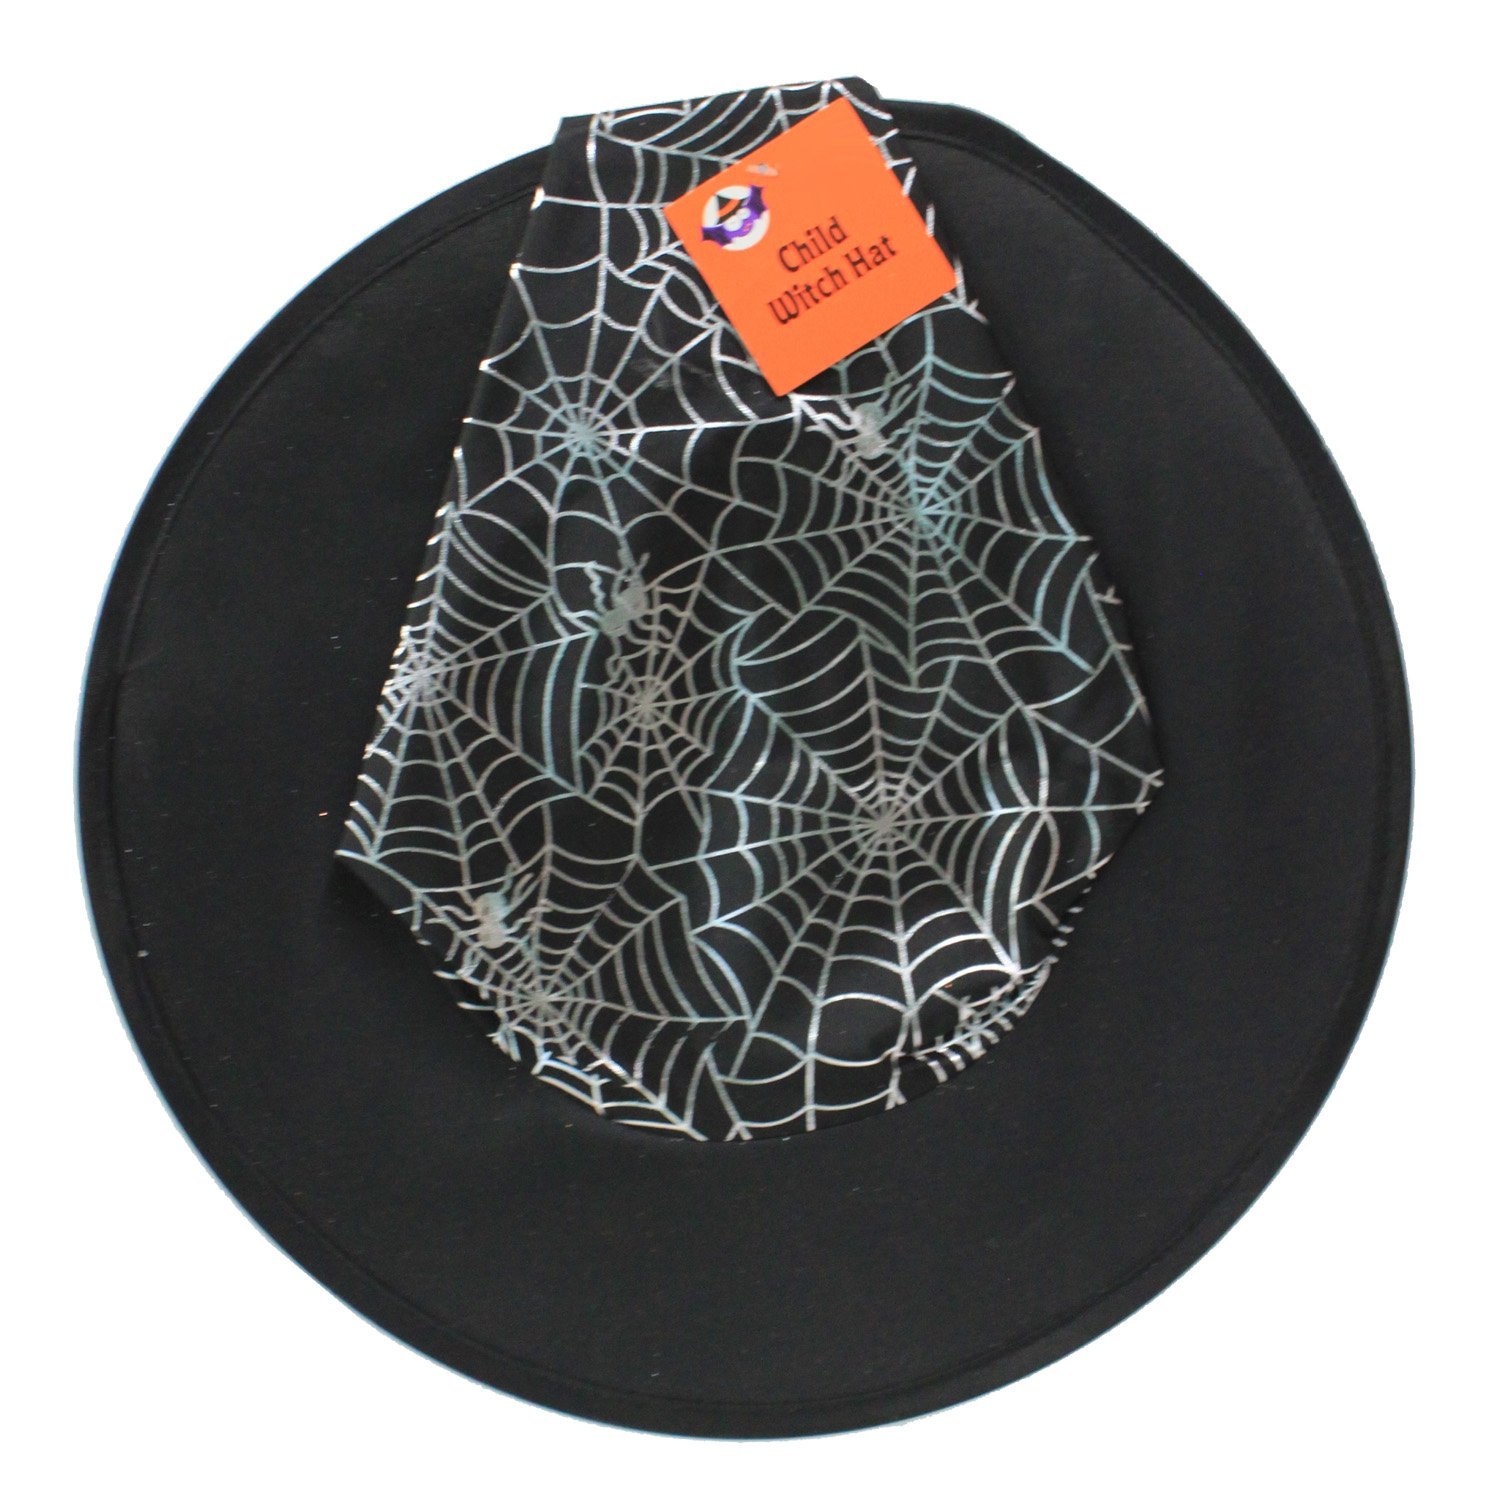 41bda79077d Amazon.com  Happy Home Gifts Black Witch Hat with Silver Spider Webs   Clothing